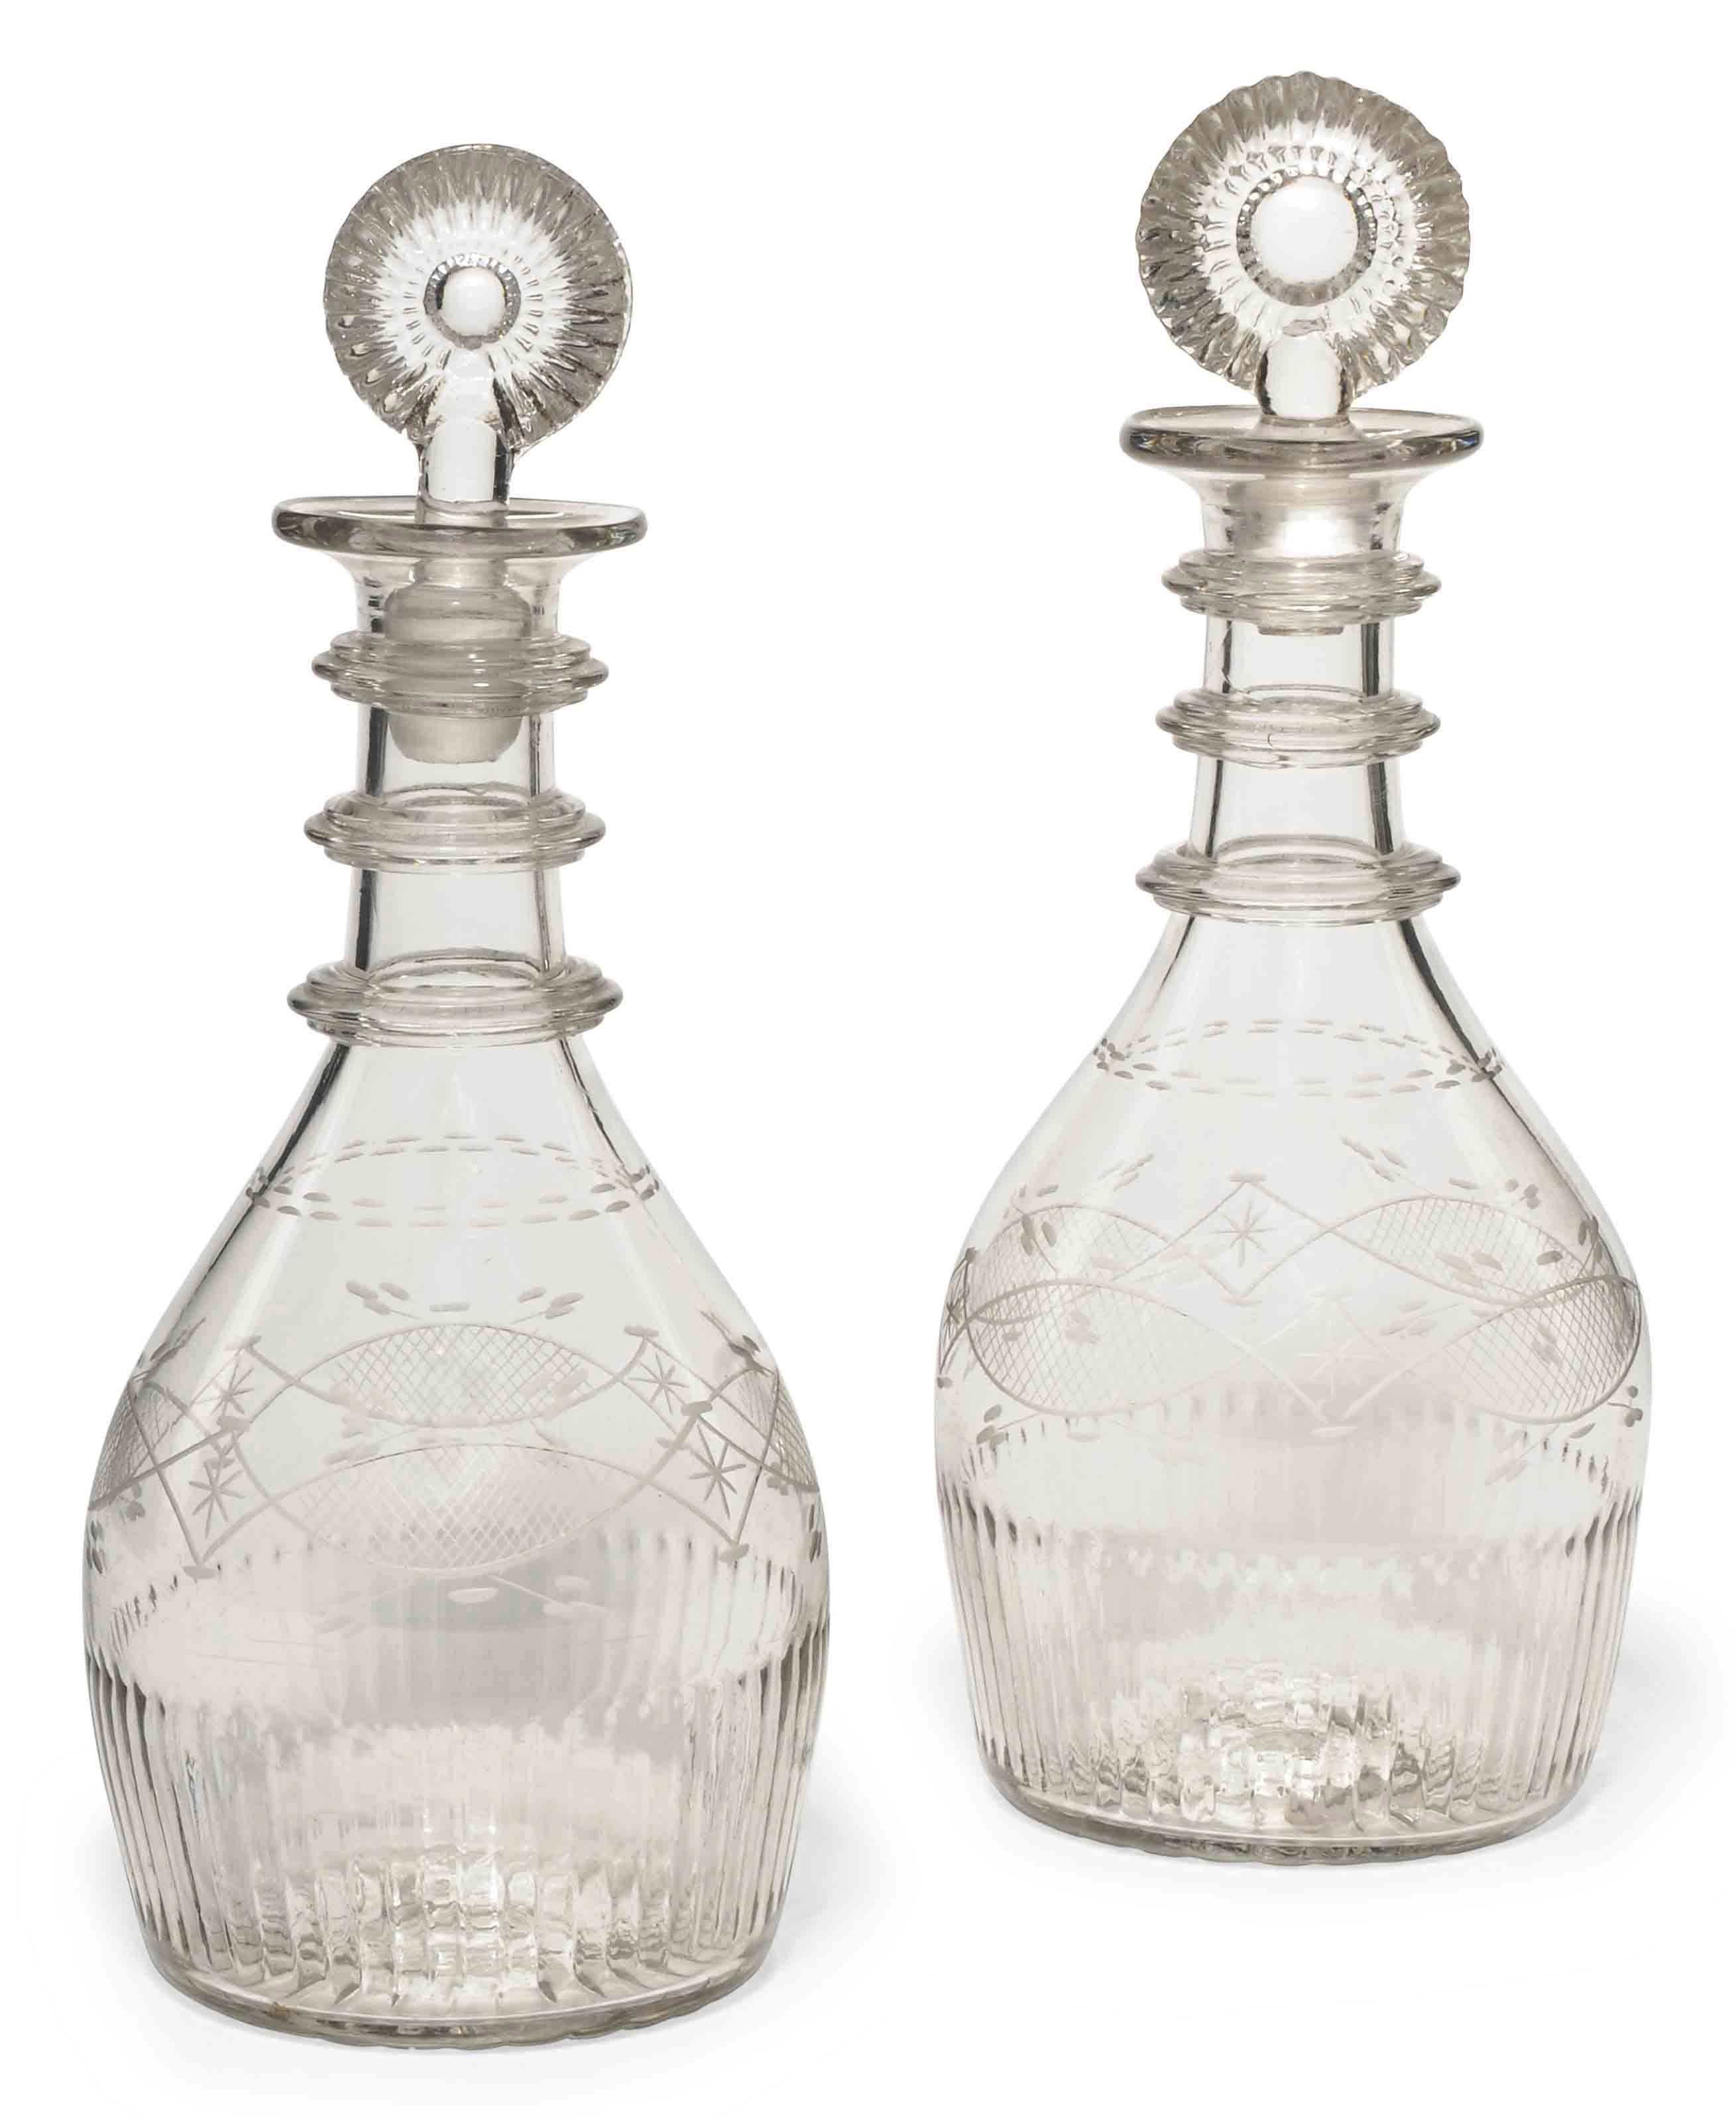 A PAIR OF IRISH (WATERLOO GLASS CO.) DECANTERS AND STOPPERS